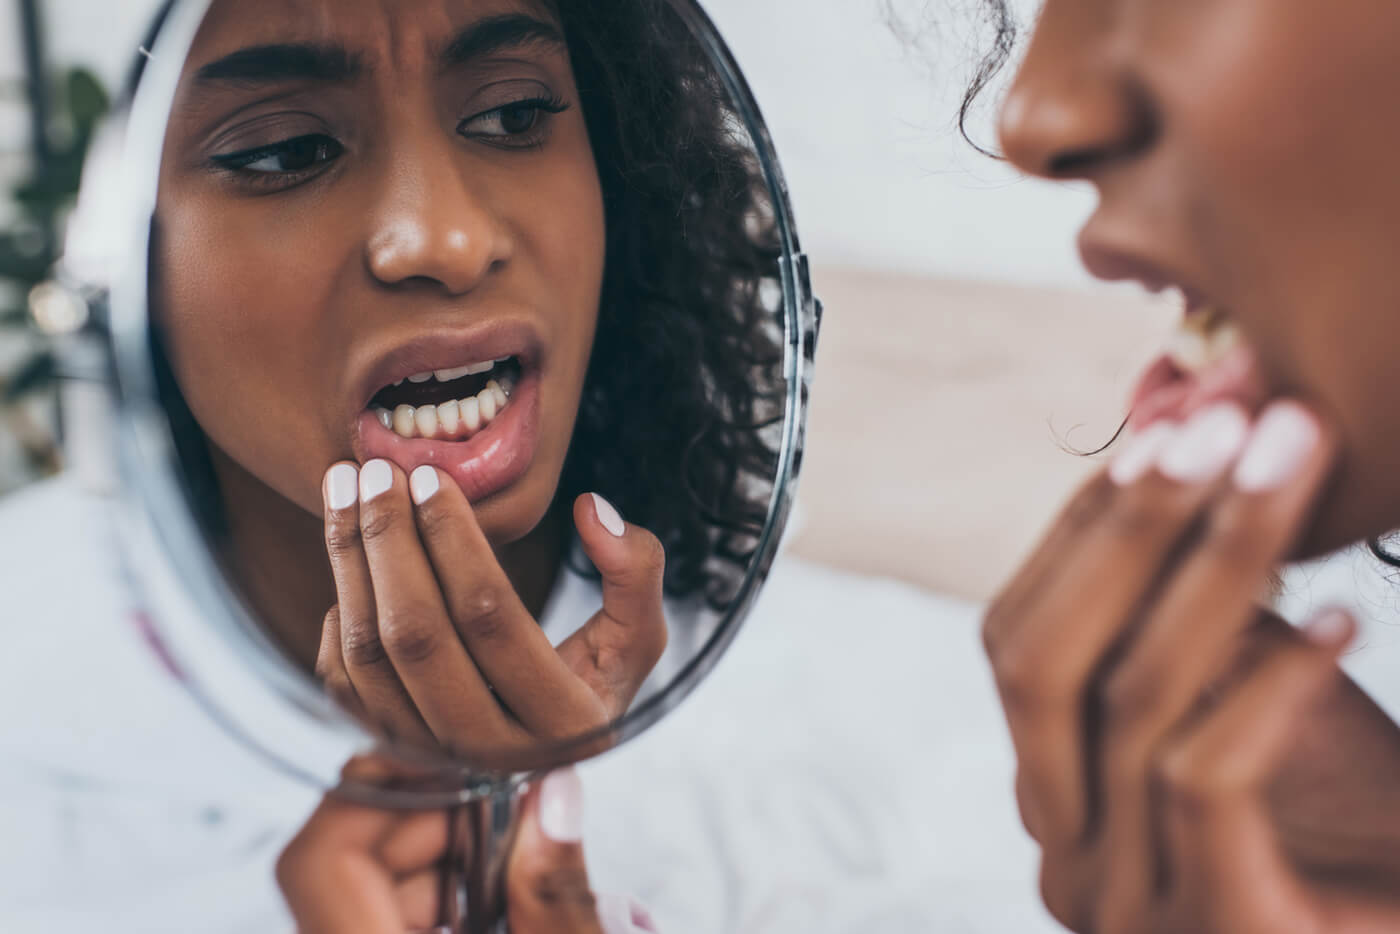 Woman with tooth pain looking in mirror